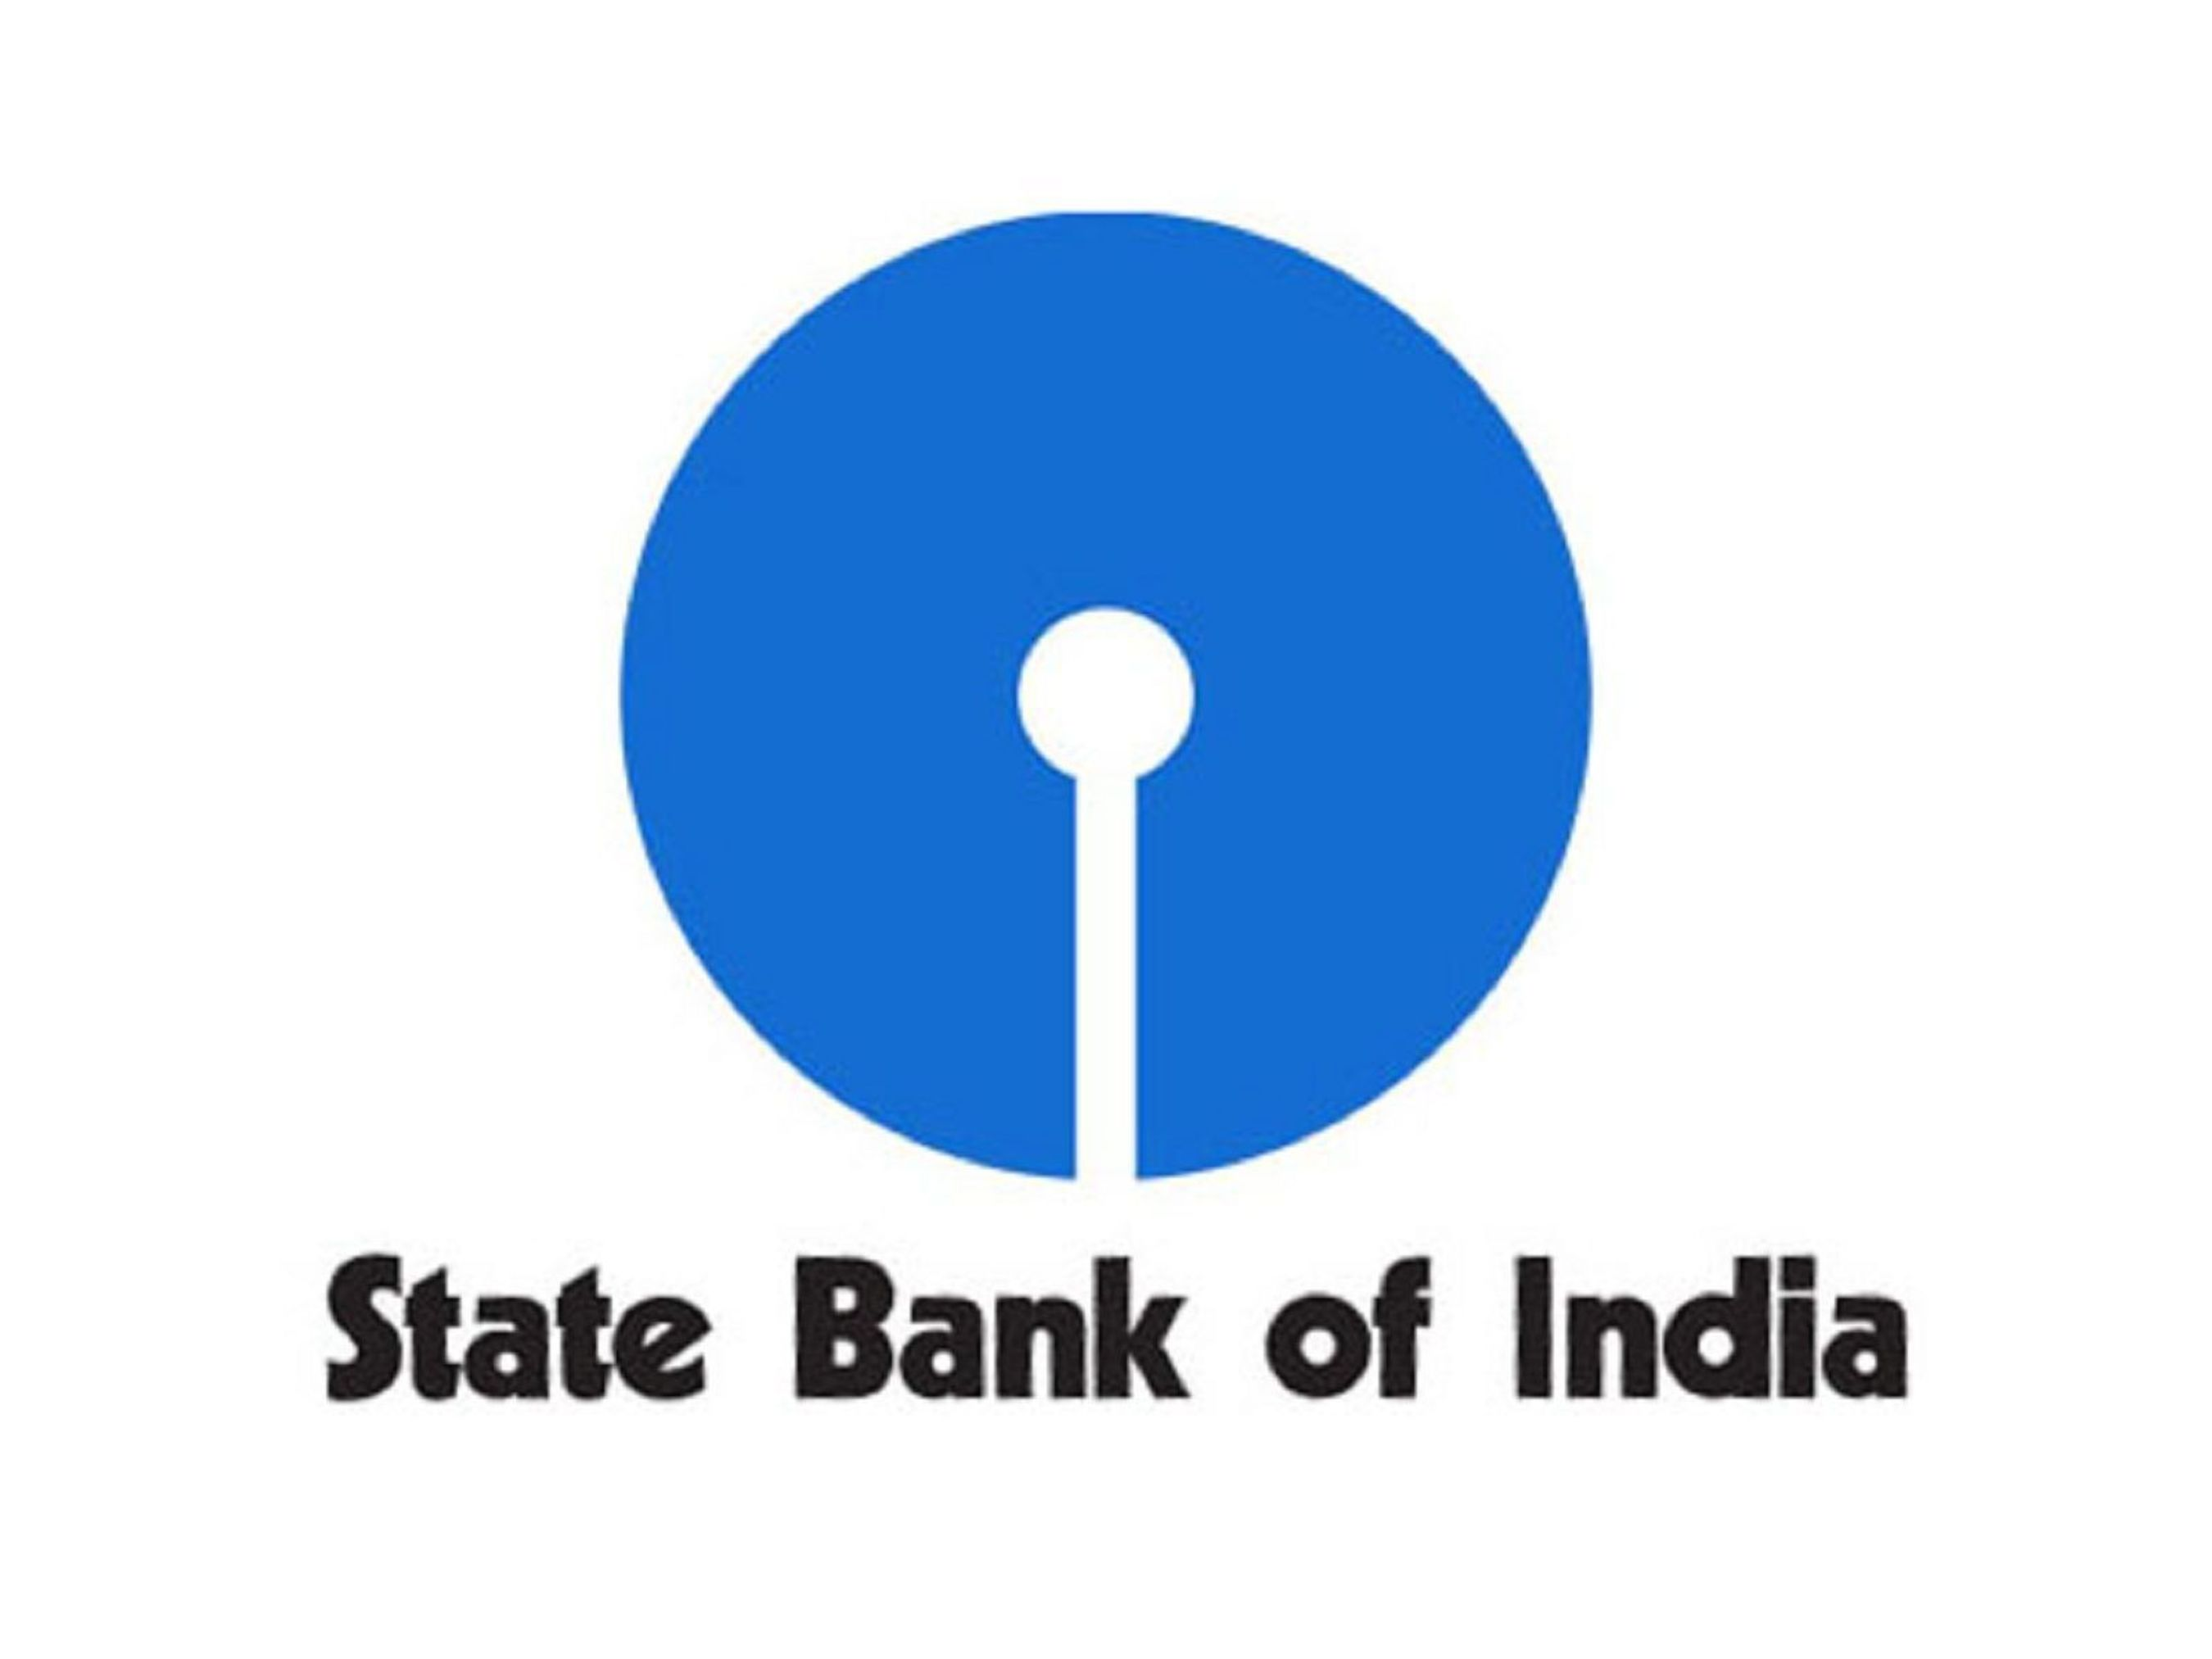 SBI Initiative Urges NRI Youth to Become Change Agents in India; Invites Applications for Fellowship Programme